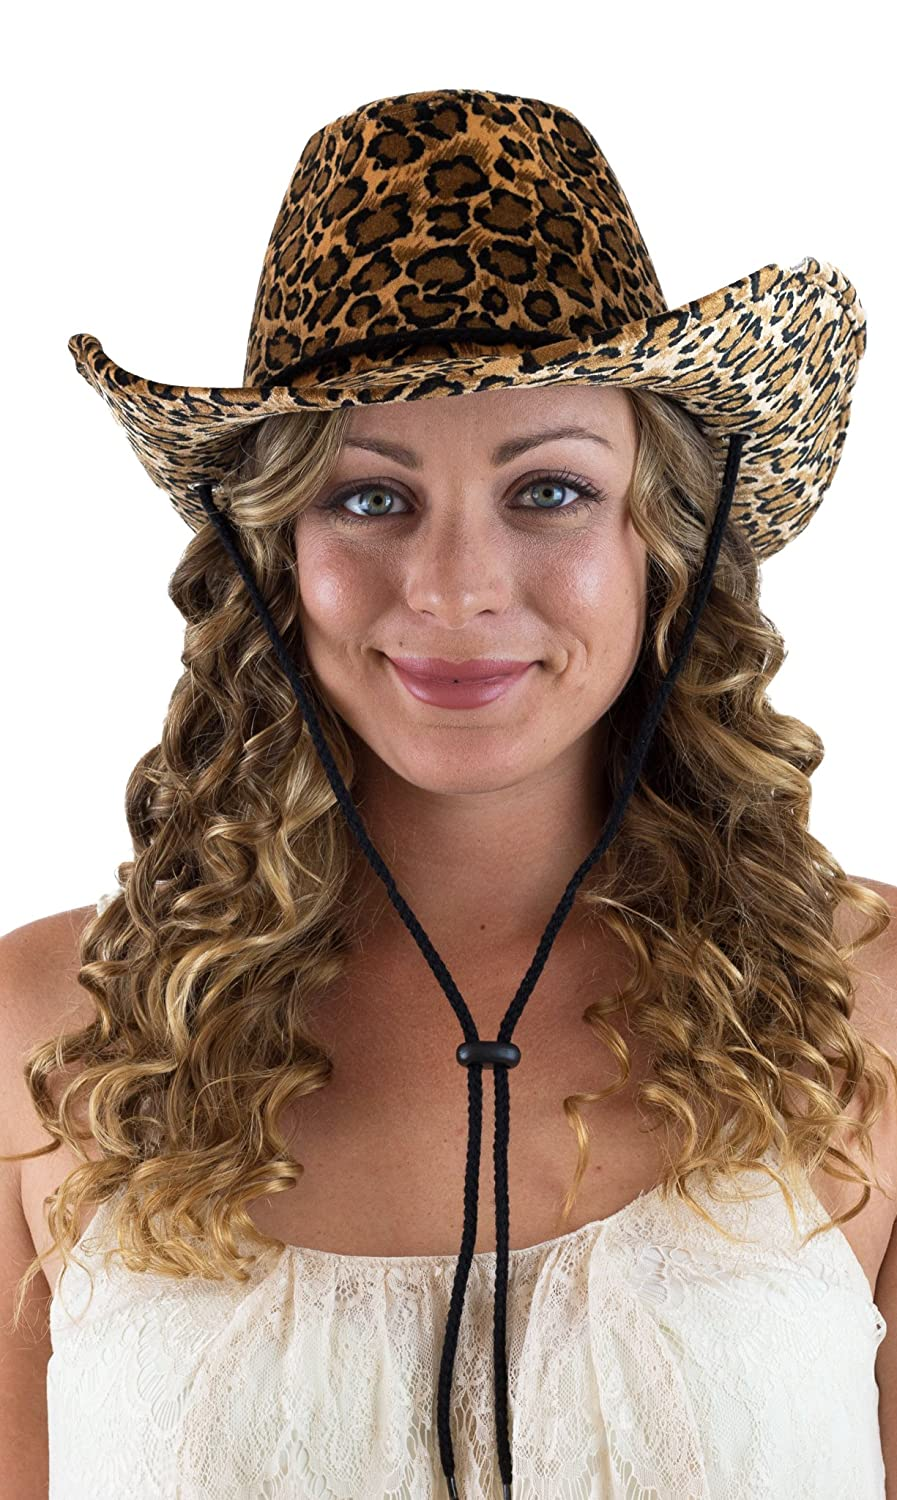 Captain Women's Cowboy Hat Leopard Print Cowgirl Hat With Fashion String